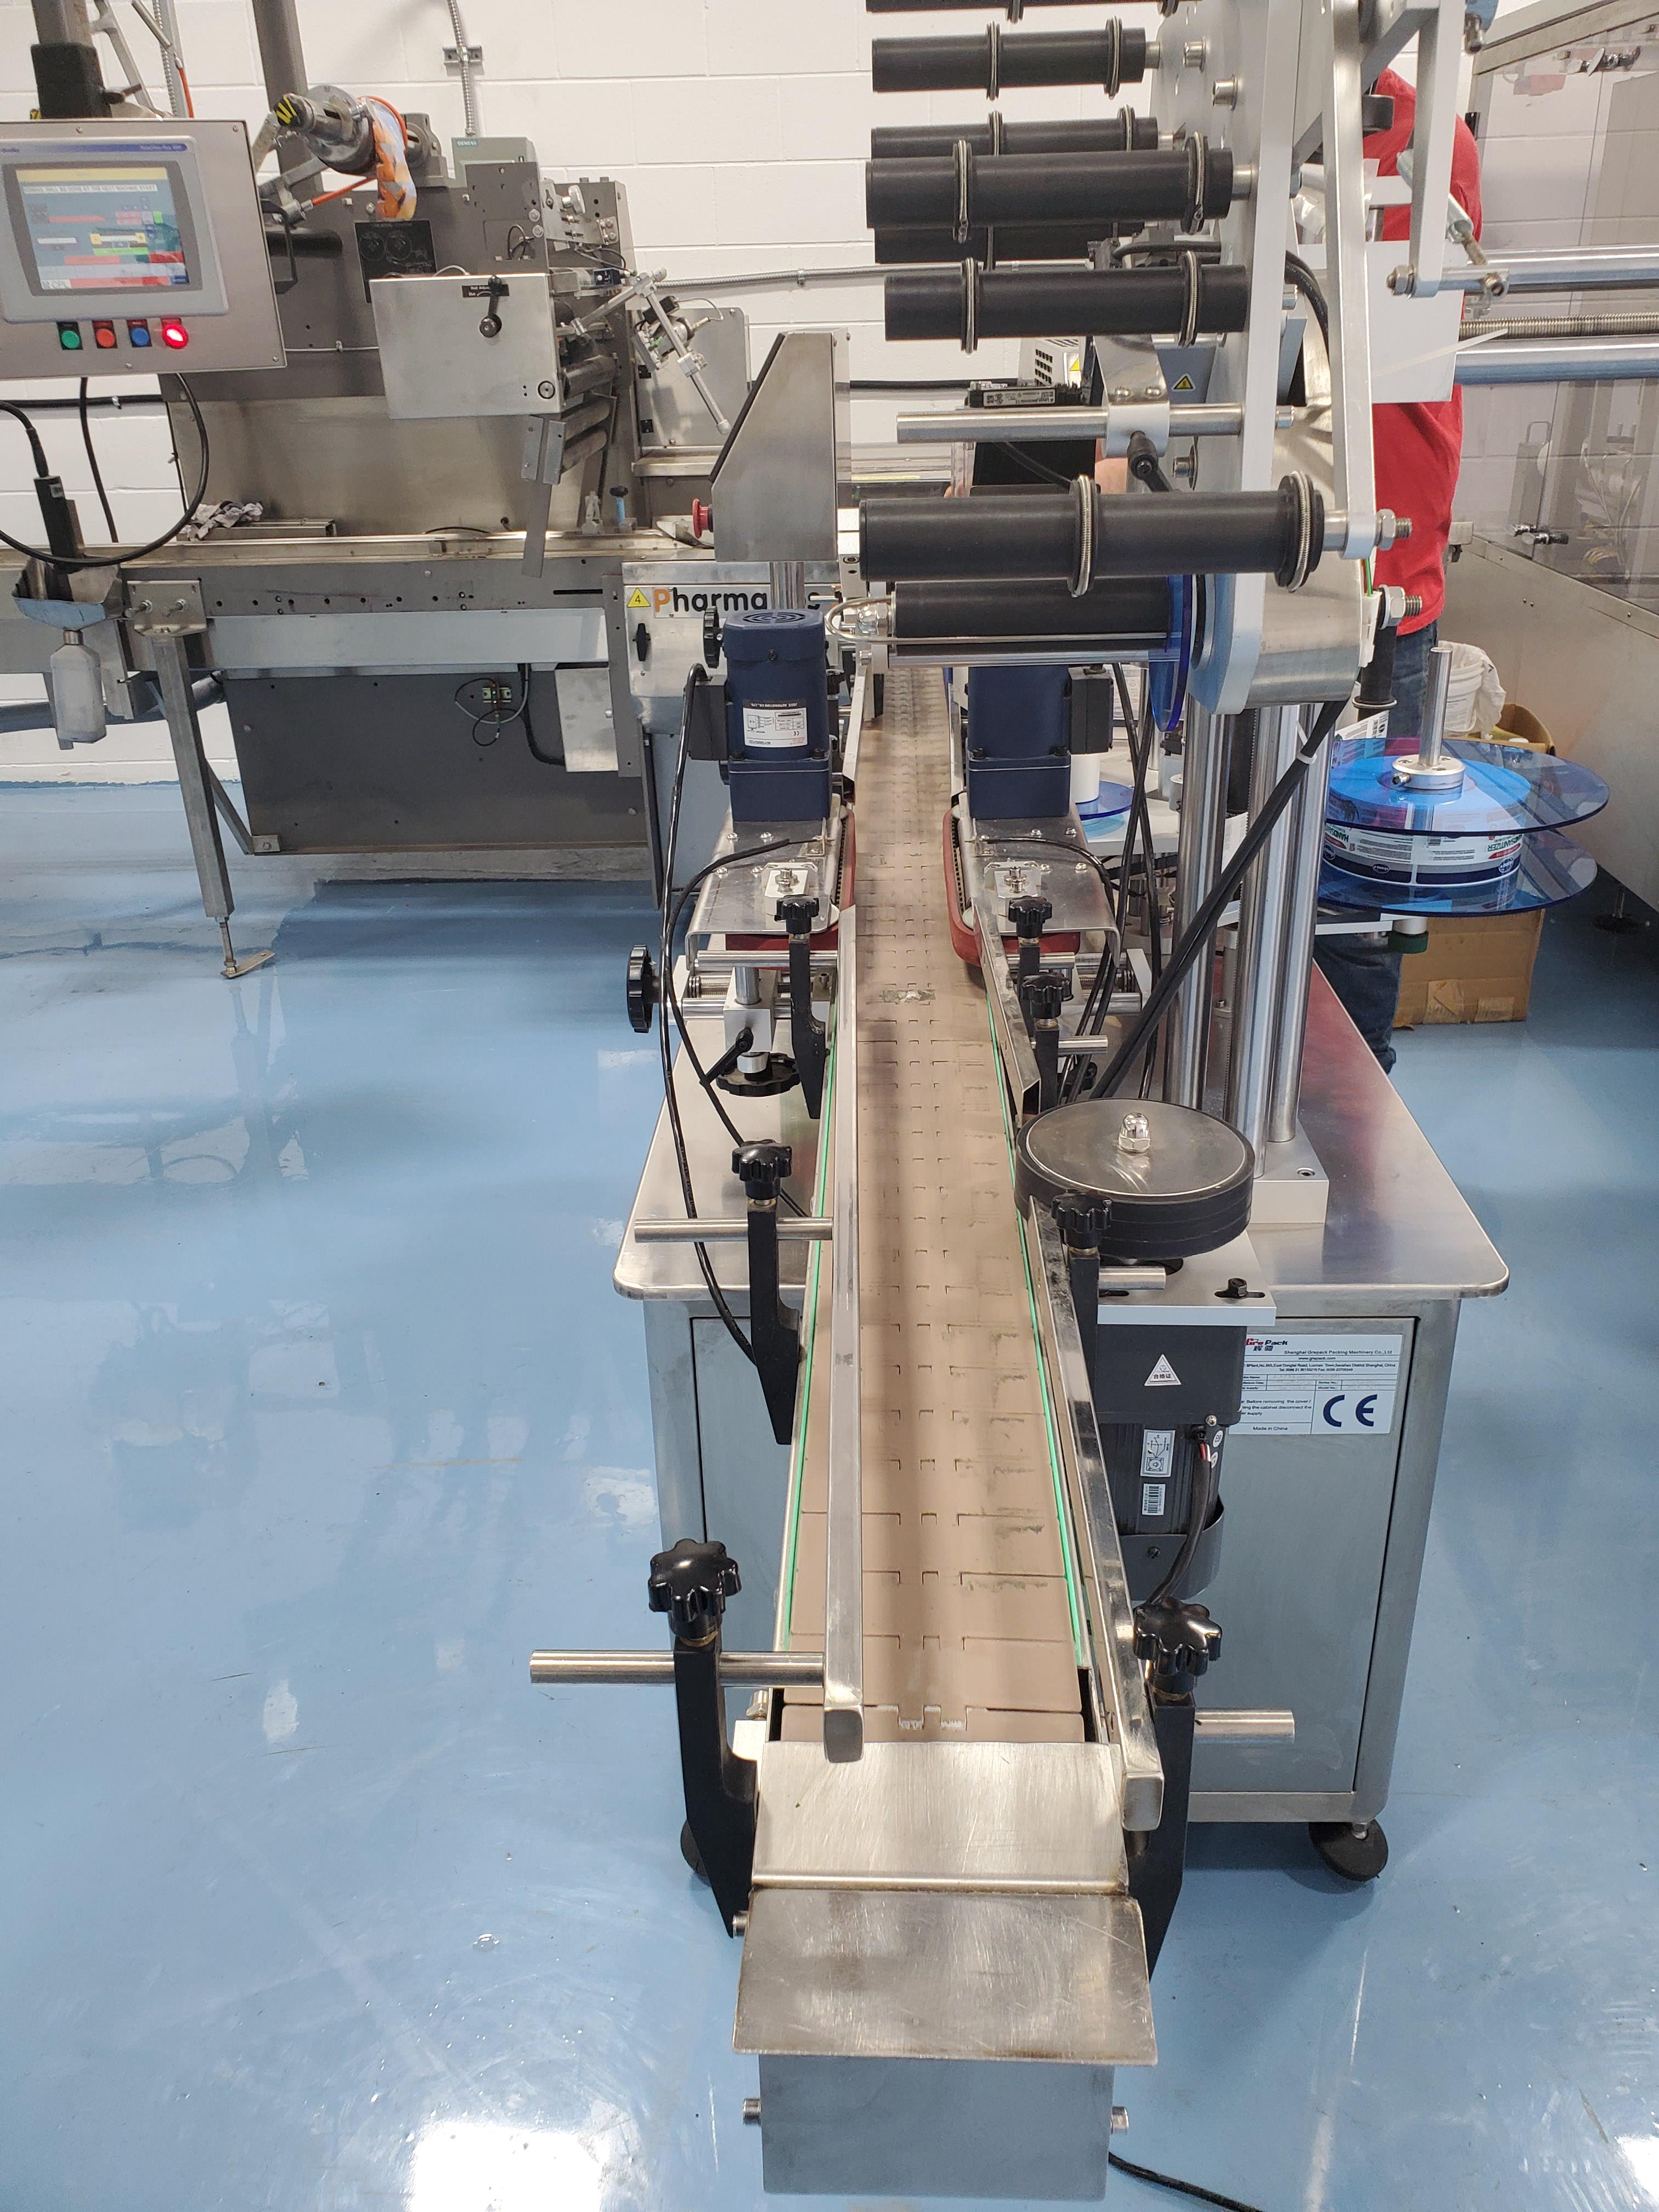 Grepack Packing Machine Integrated Wrap Around and Top Down Labeler with Conveyor - Image 6 of 8